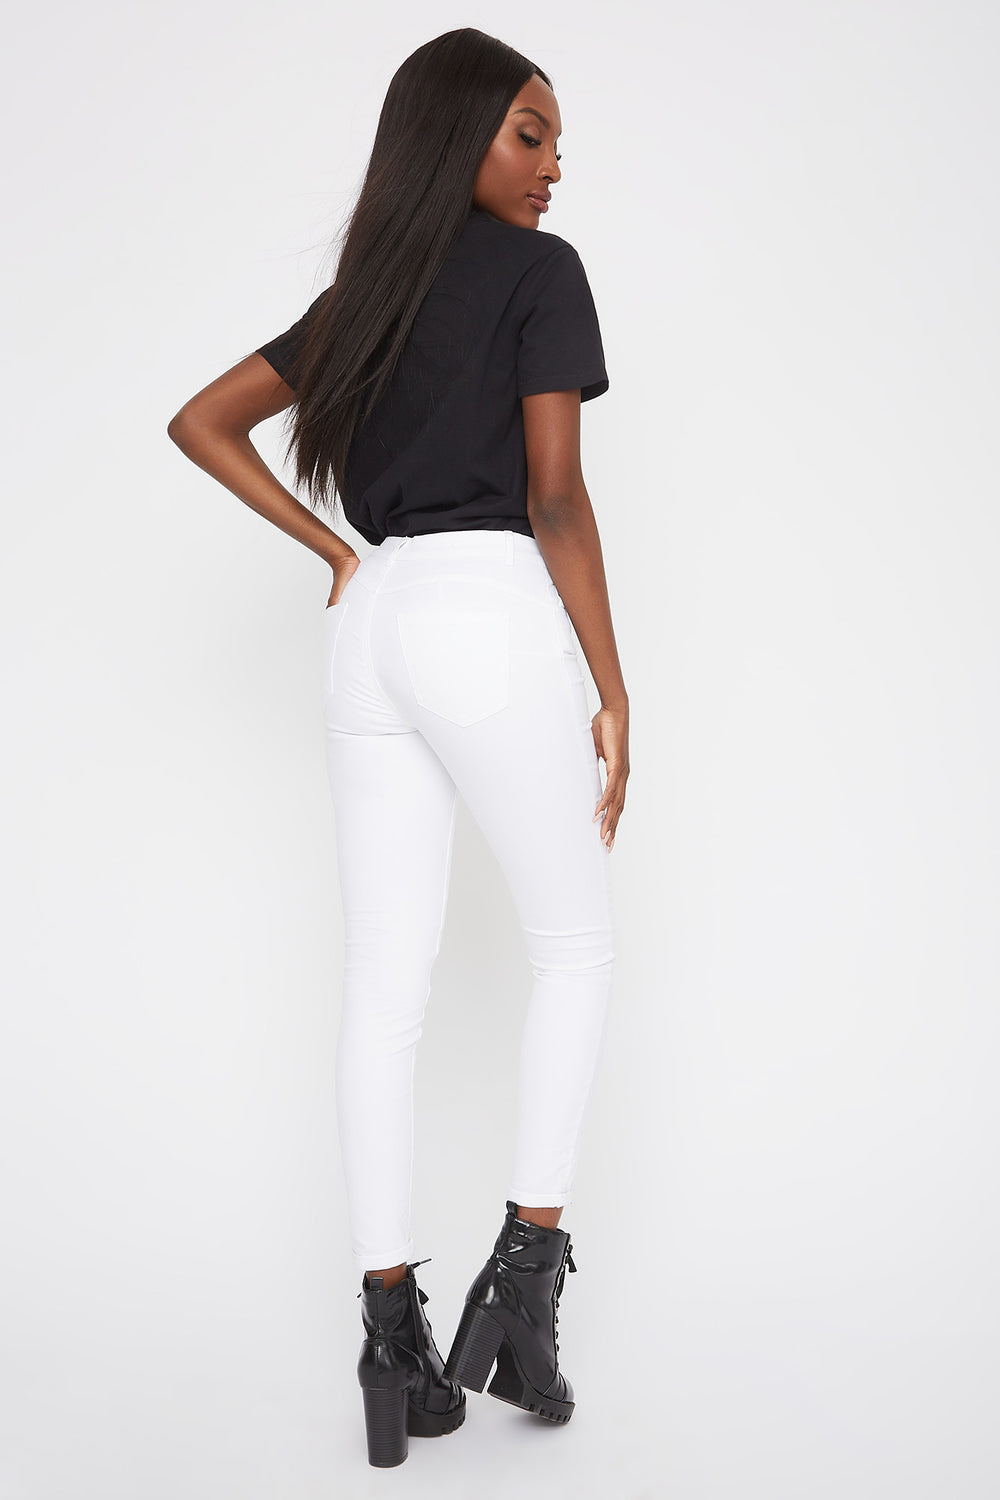 Mid-Rise Push-Up Skinny Jean White